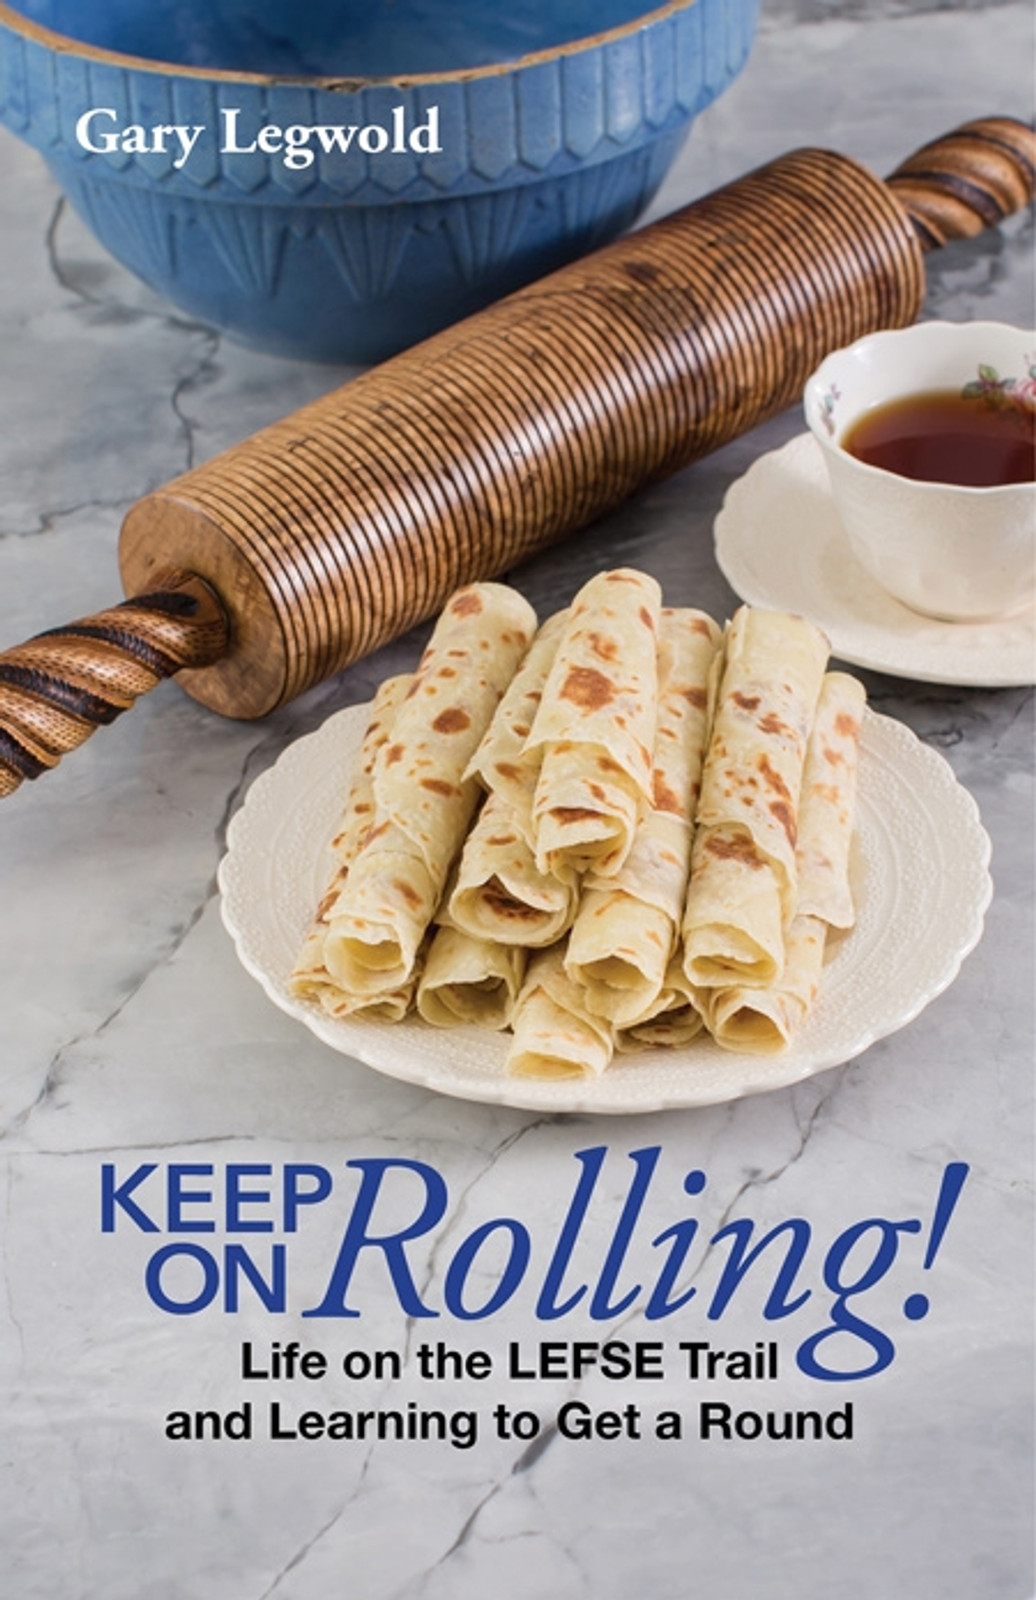 Keep on Rolling! Life on the Lefse Trail and Learning to Get a Round, by Gary Legwold (978-0-9652027-2-5)